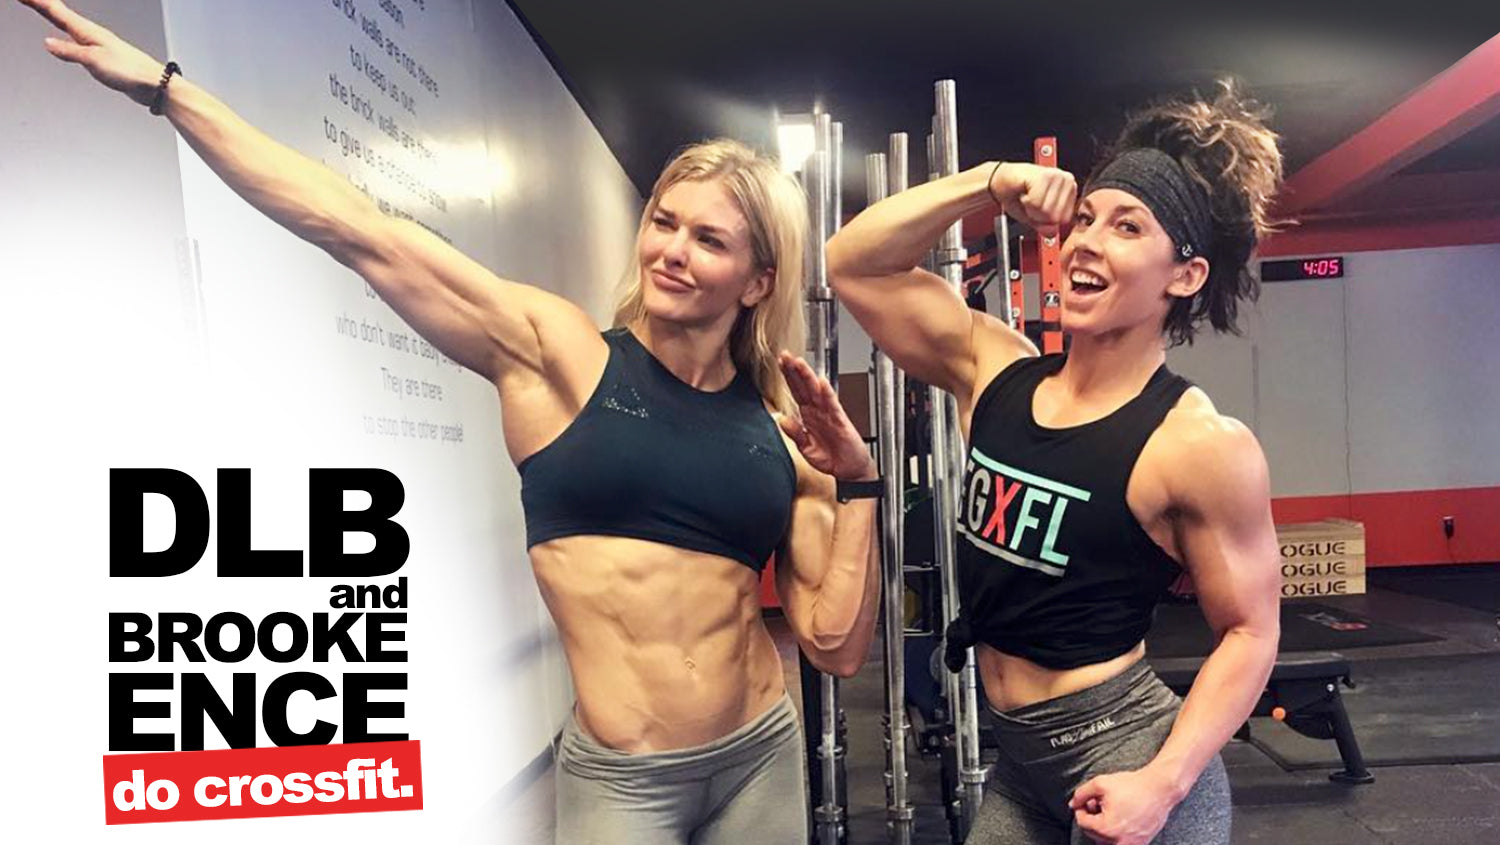 DLB & BROOKE ENCE DO CROSSFIT - Run Everything Labs